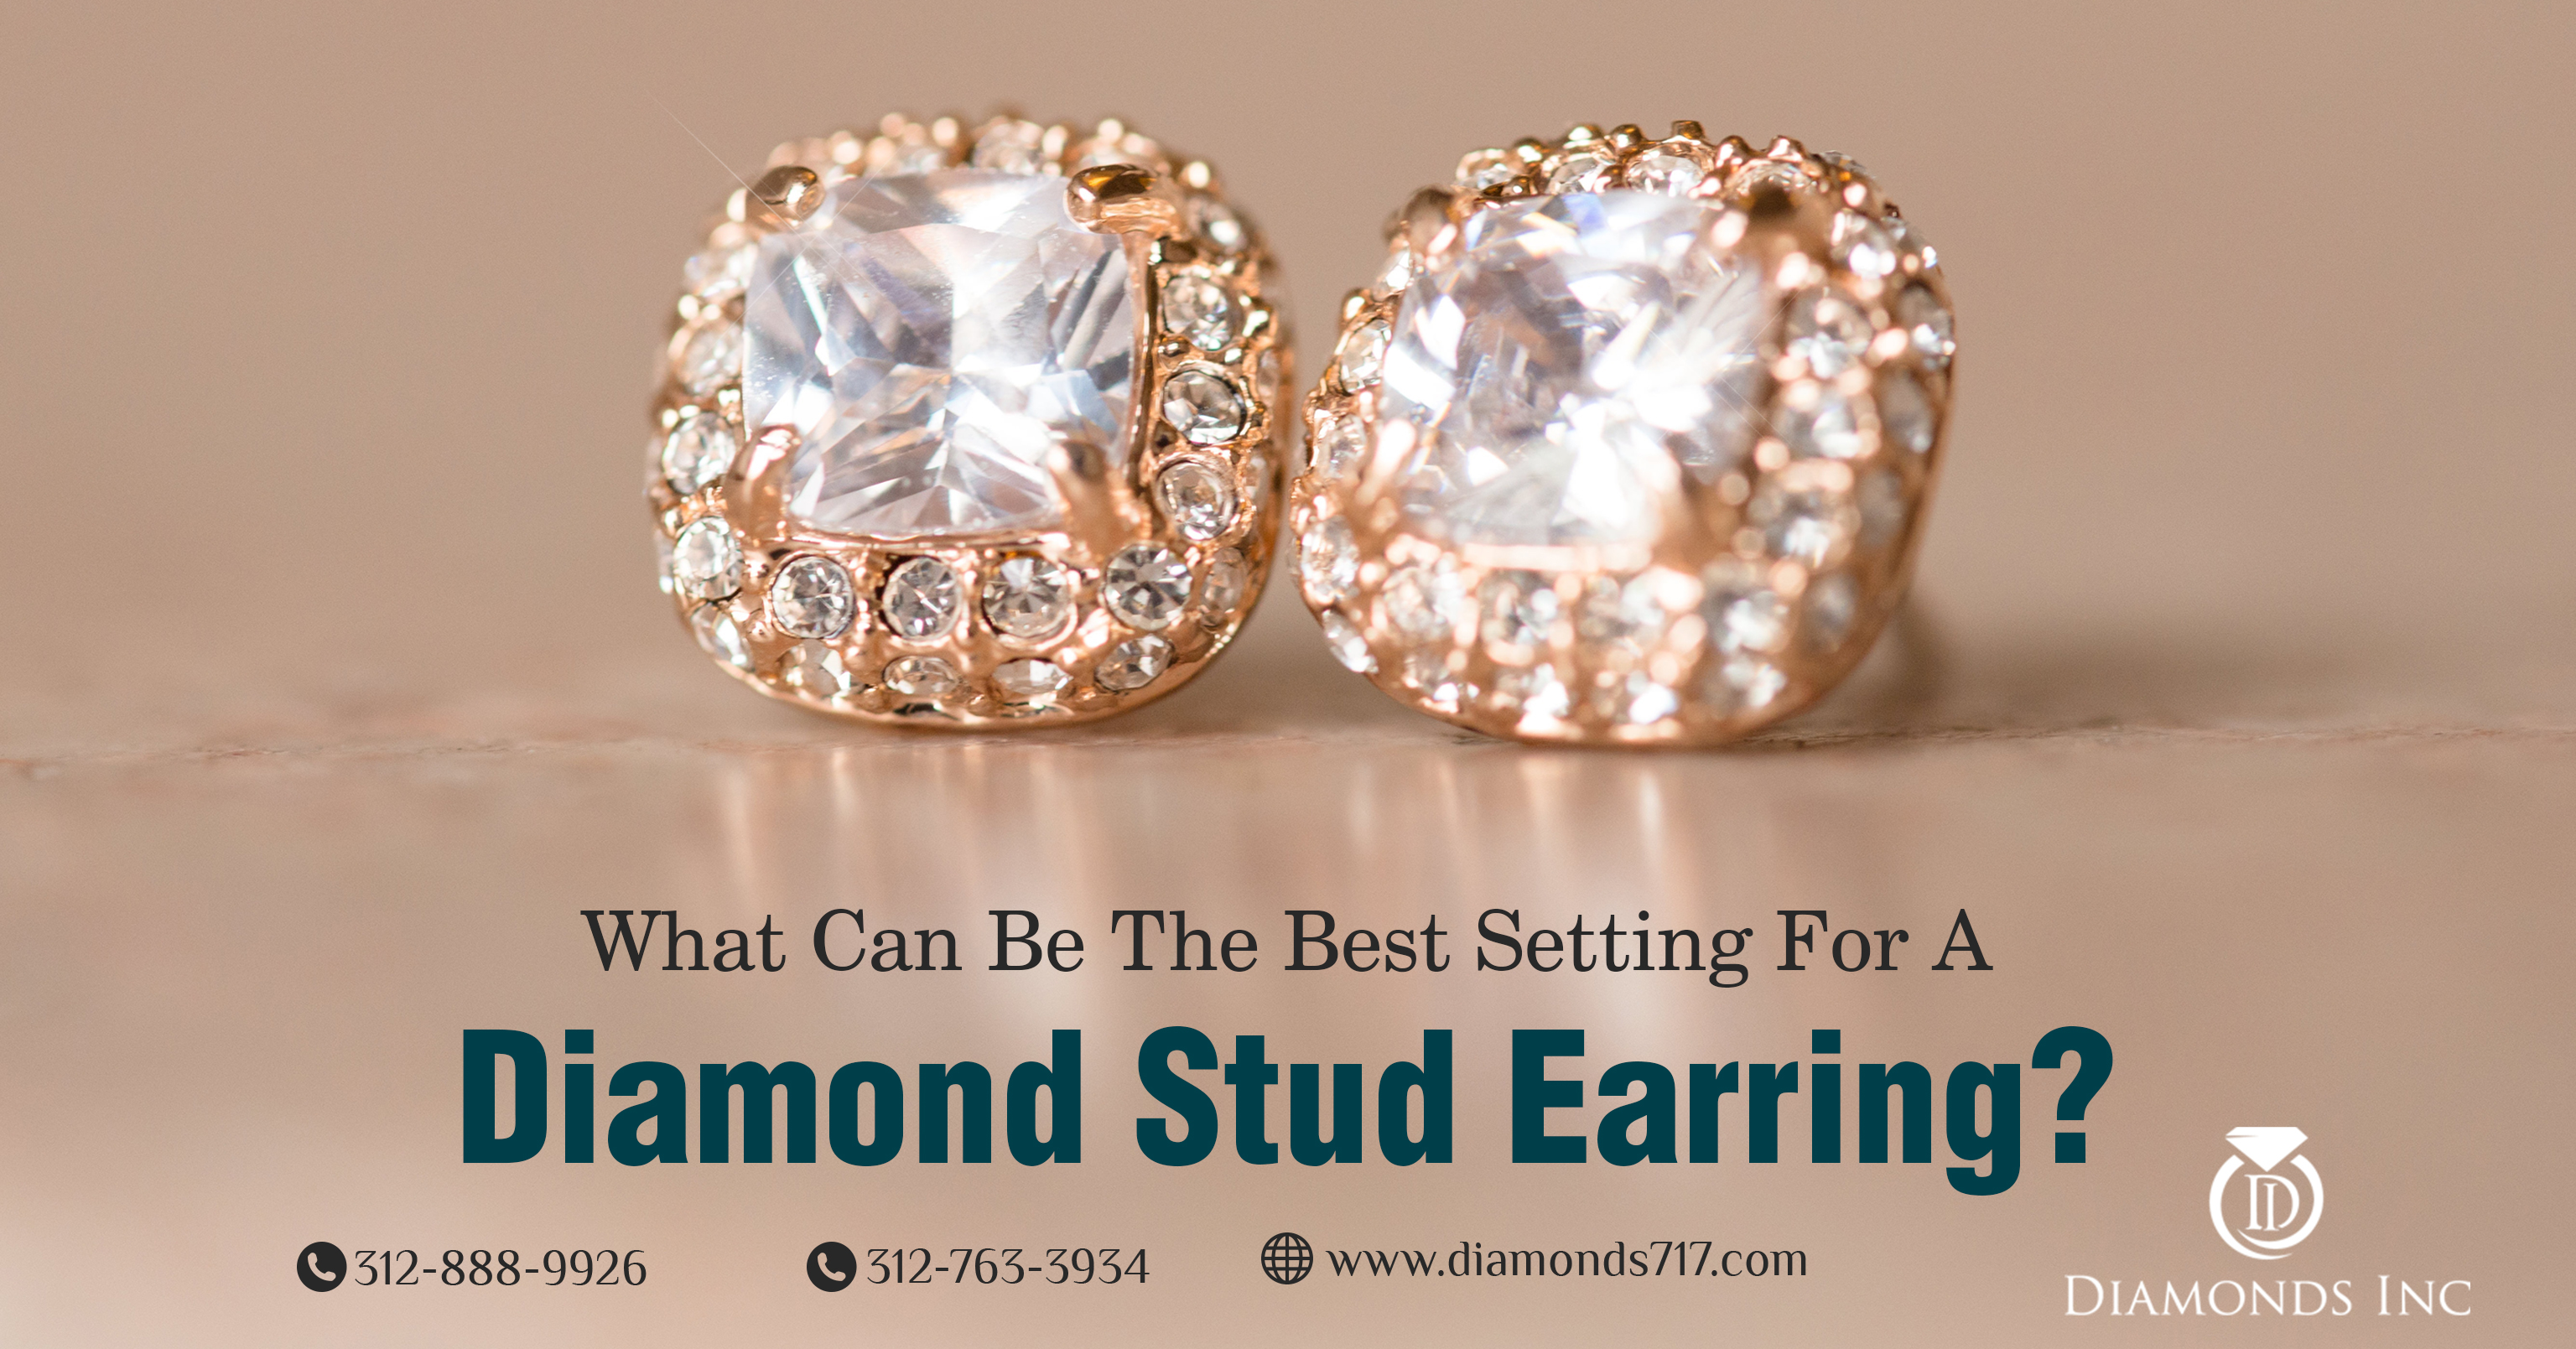 What Can Be the Best Setting for a Diamond Stud Earring?